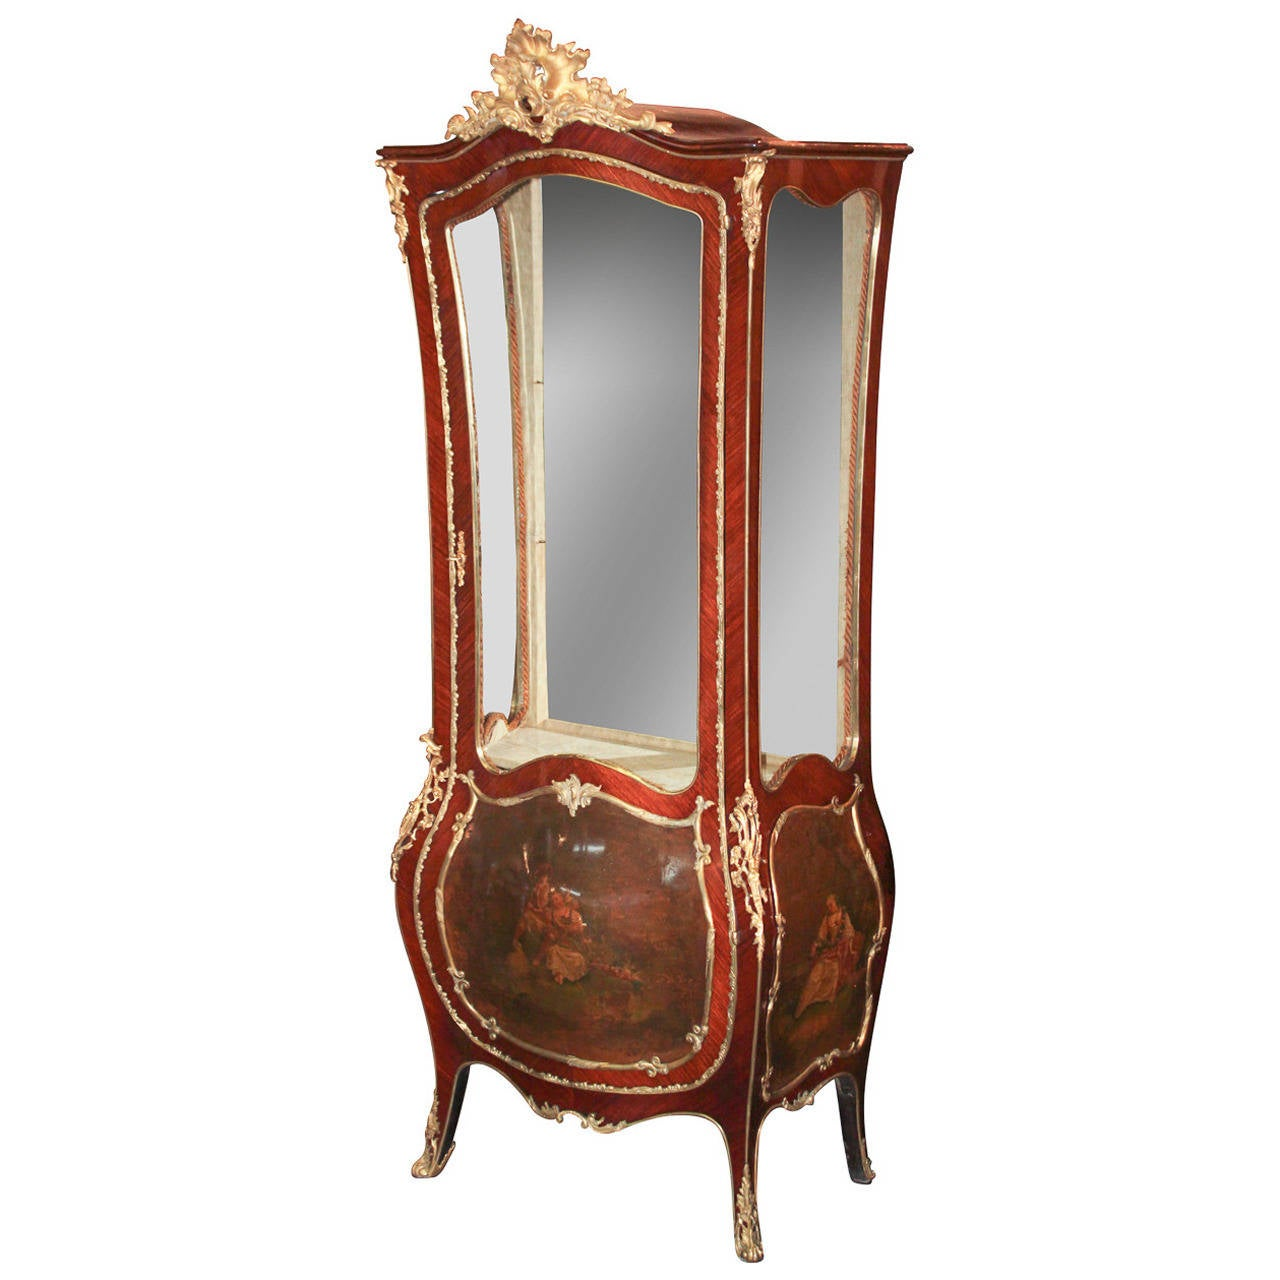 French Louis XV Curio Cabinet 1 - Fine 19th C. French Louis XV Curio Cabinet For Sale At 1stdibs